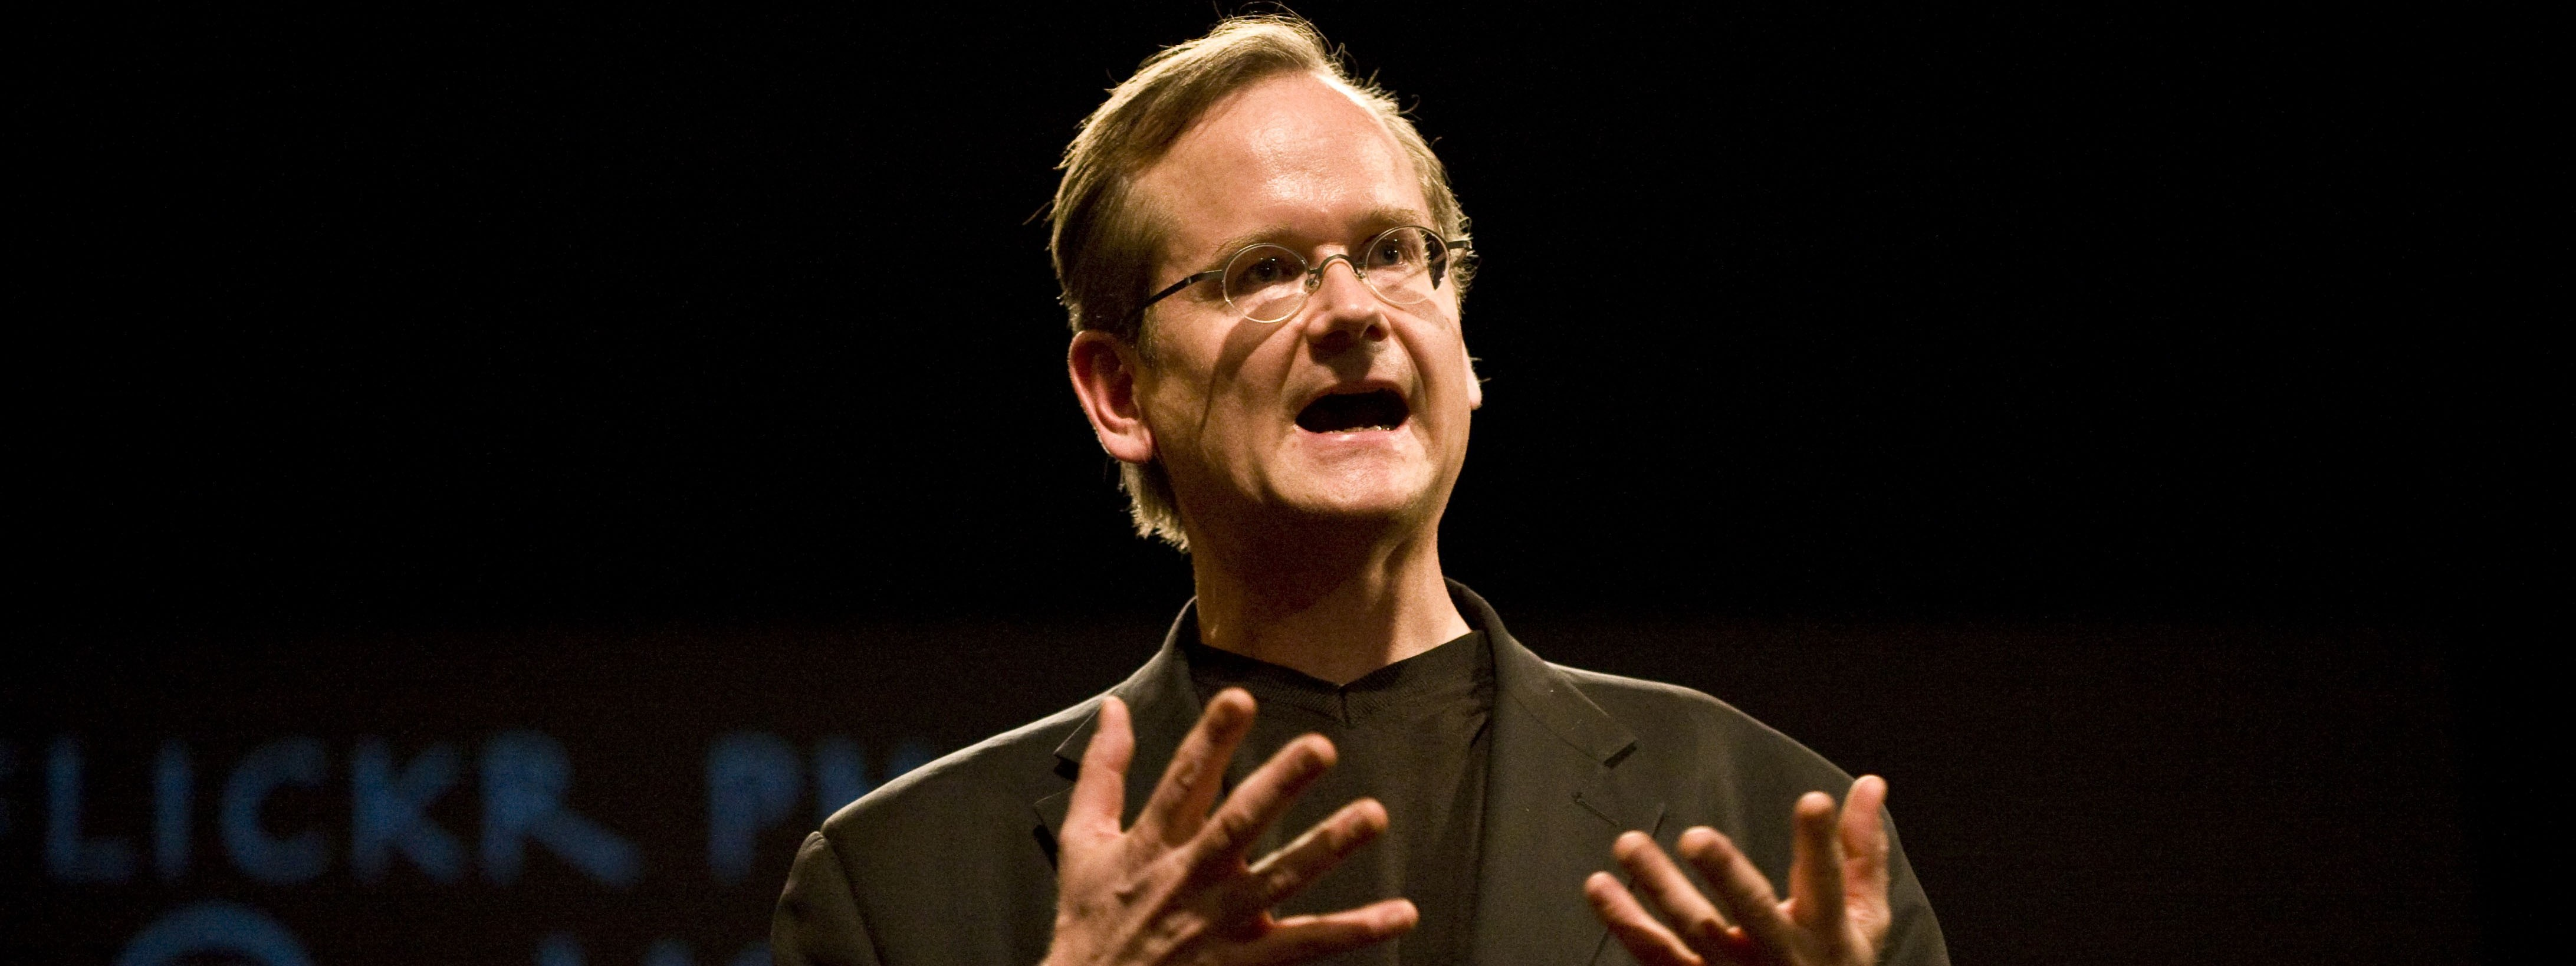 Cyberlaw, conférence de Lawrence Lessig le 6 avril